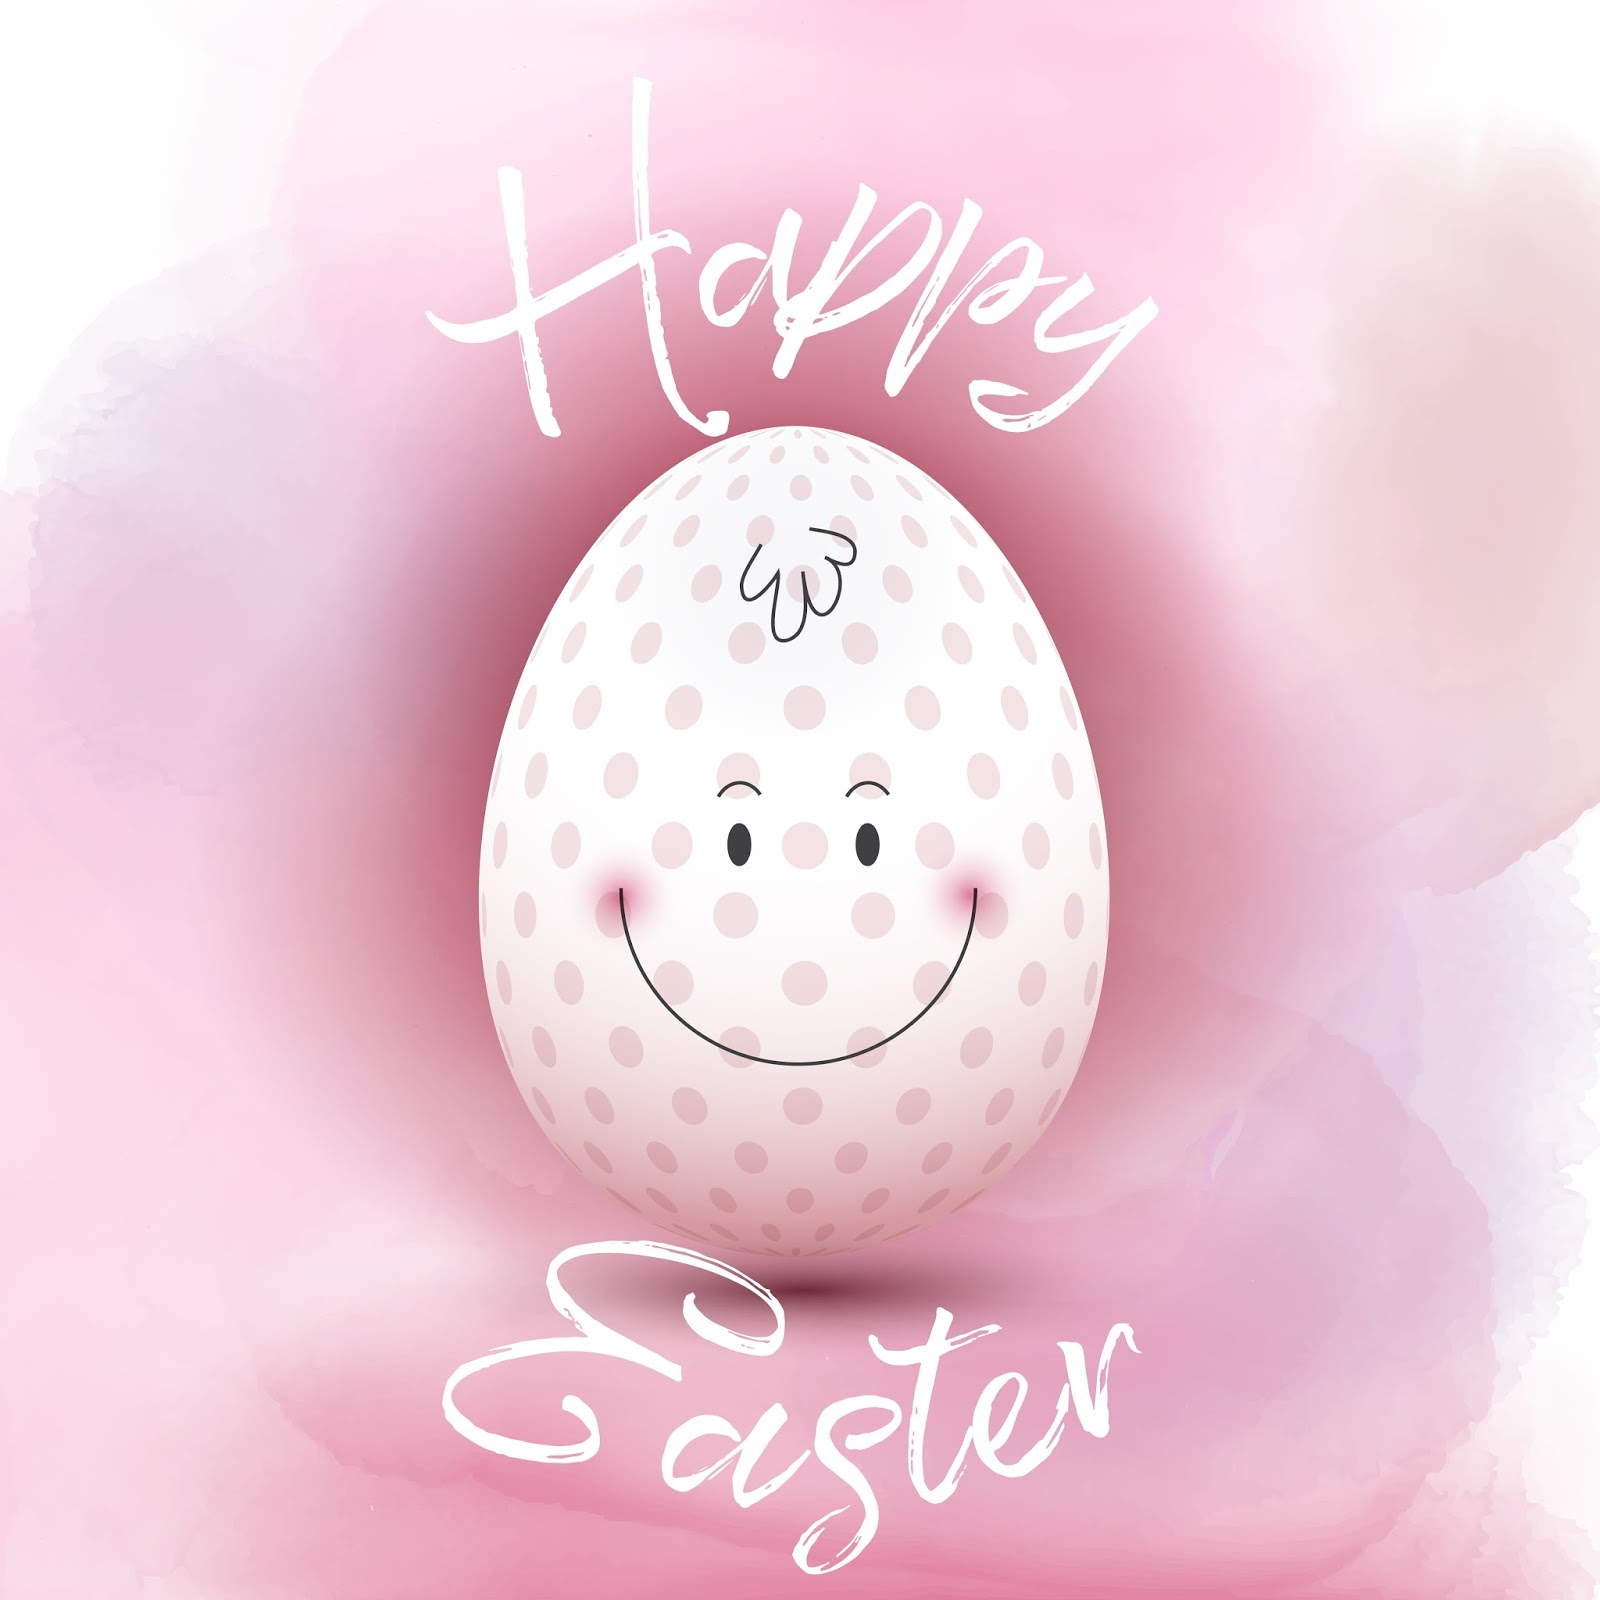 Happy Easter 2017 HD Wallpapers Images